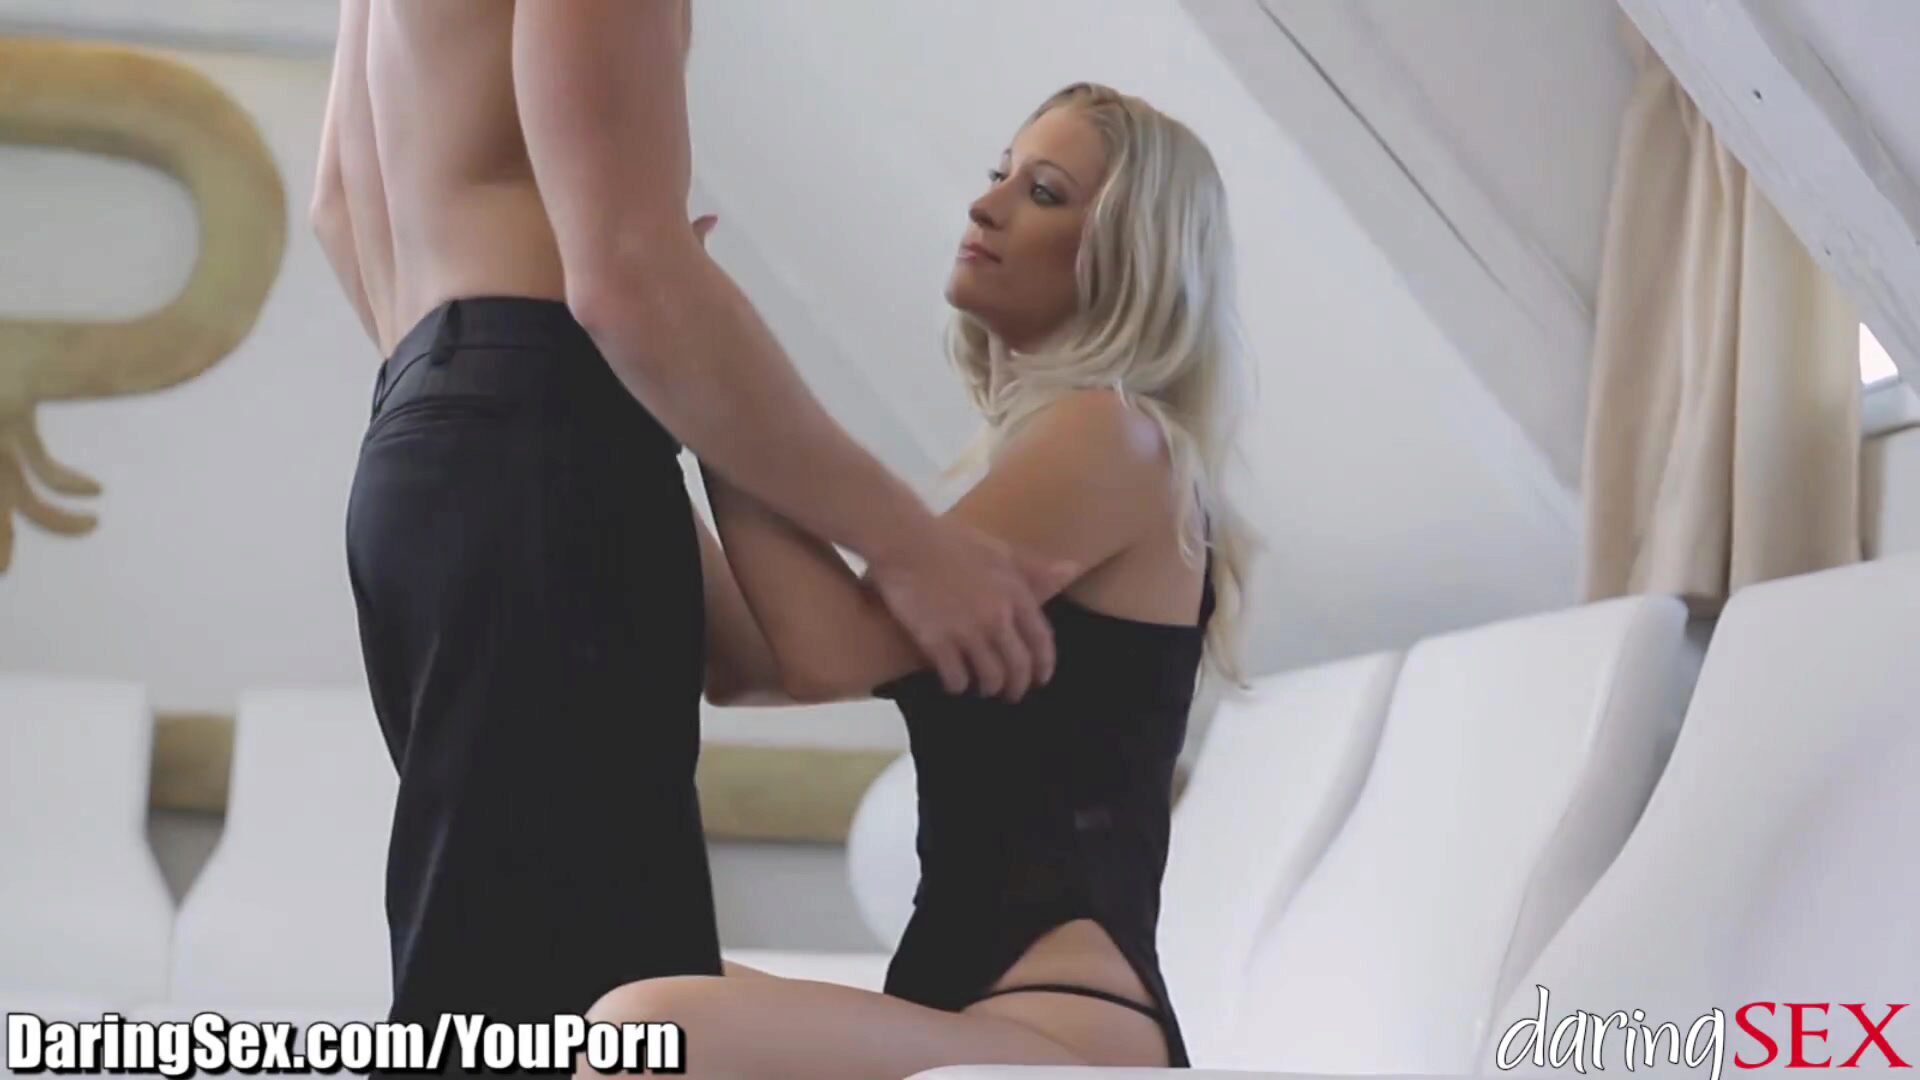 DaringSex Hot mother I'd like to fuck SQUIRTS over and over! Passionate banging leads milf to spray a few times